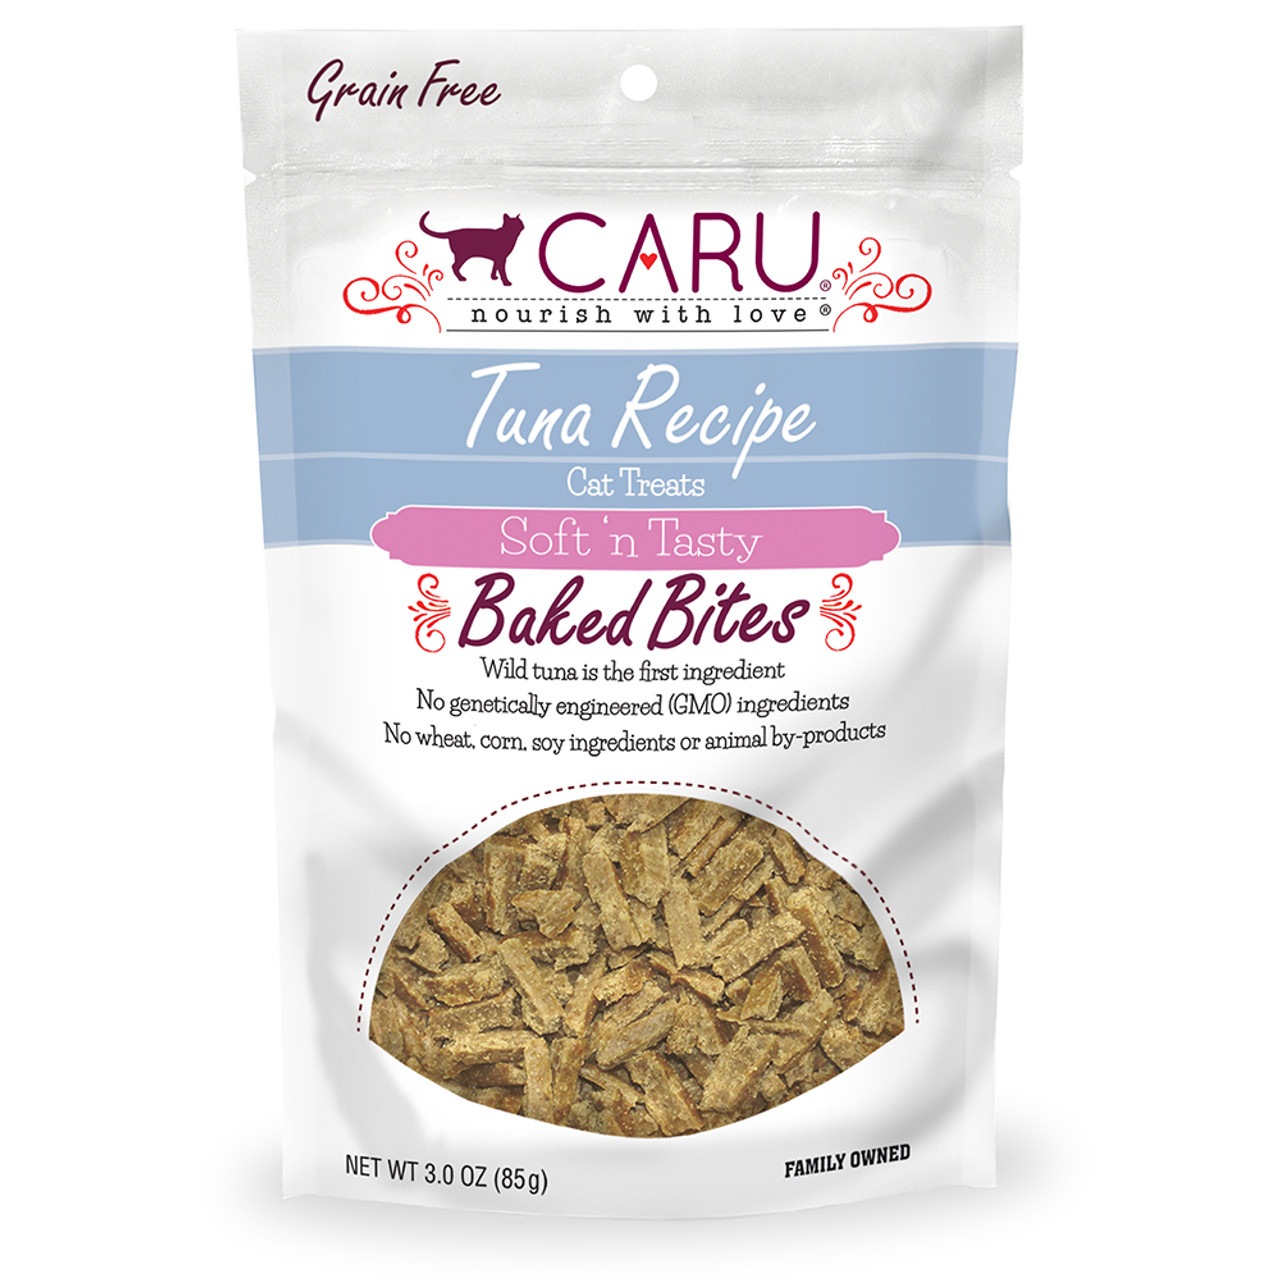 Caru Soft 'n Tasty Baked Bites Tuna Recipe Cat Treats